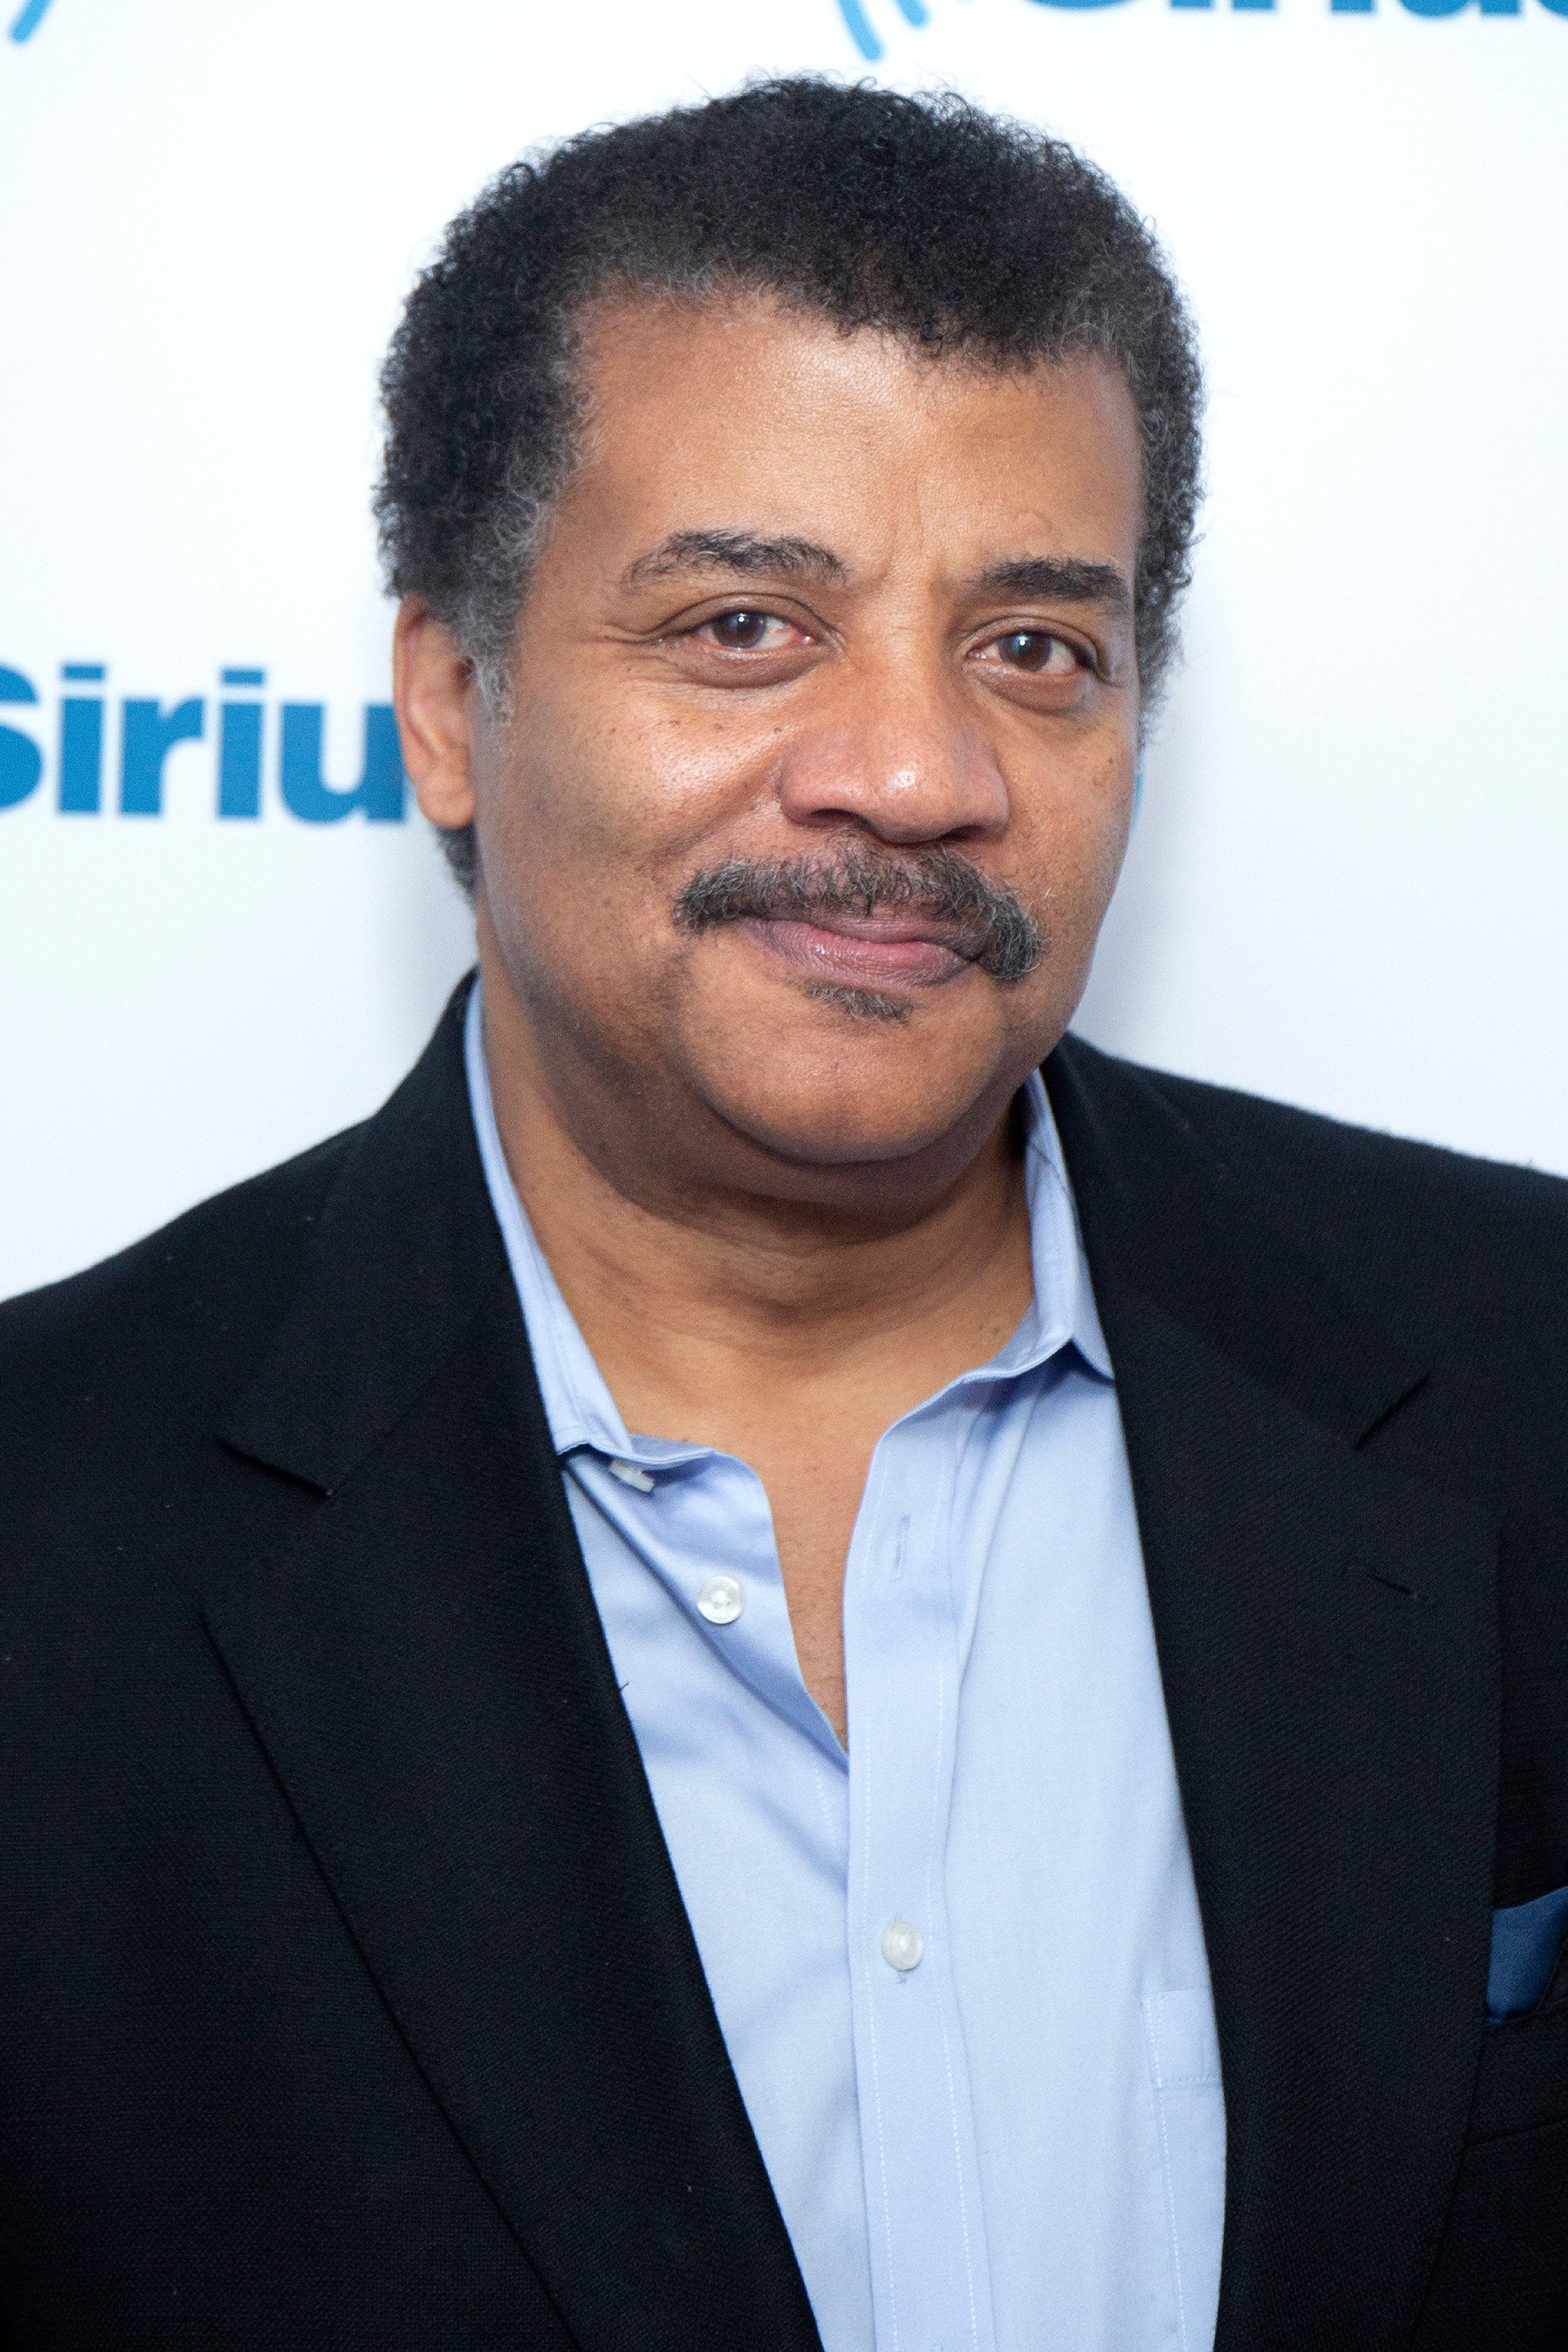 NEW YORK, NY - NOVEMBER 08:  Neil deGrasse Tyson visits SiriusXM Studios on November 8, 2018 in New York City.  (Photo by Santiago Felipe/Getty Images)